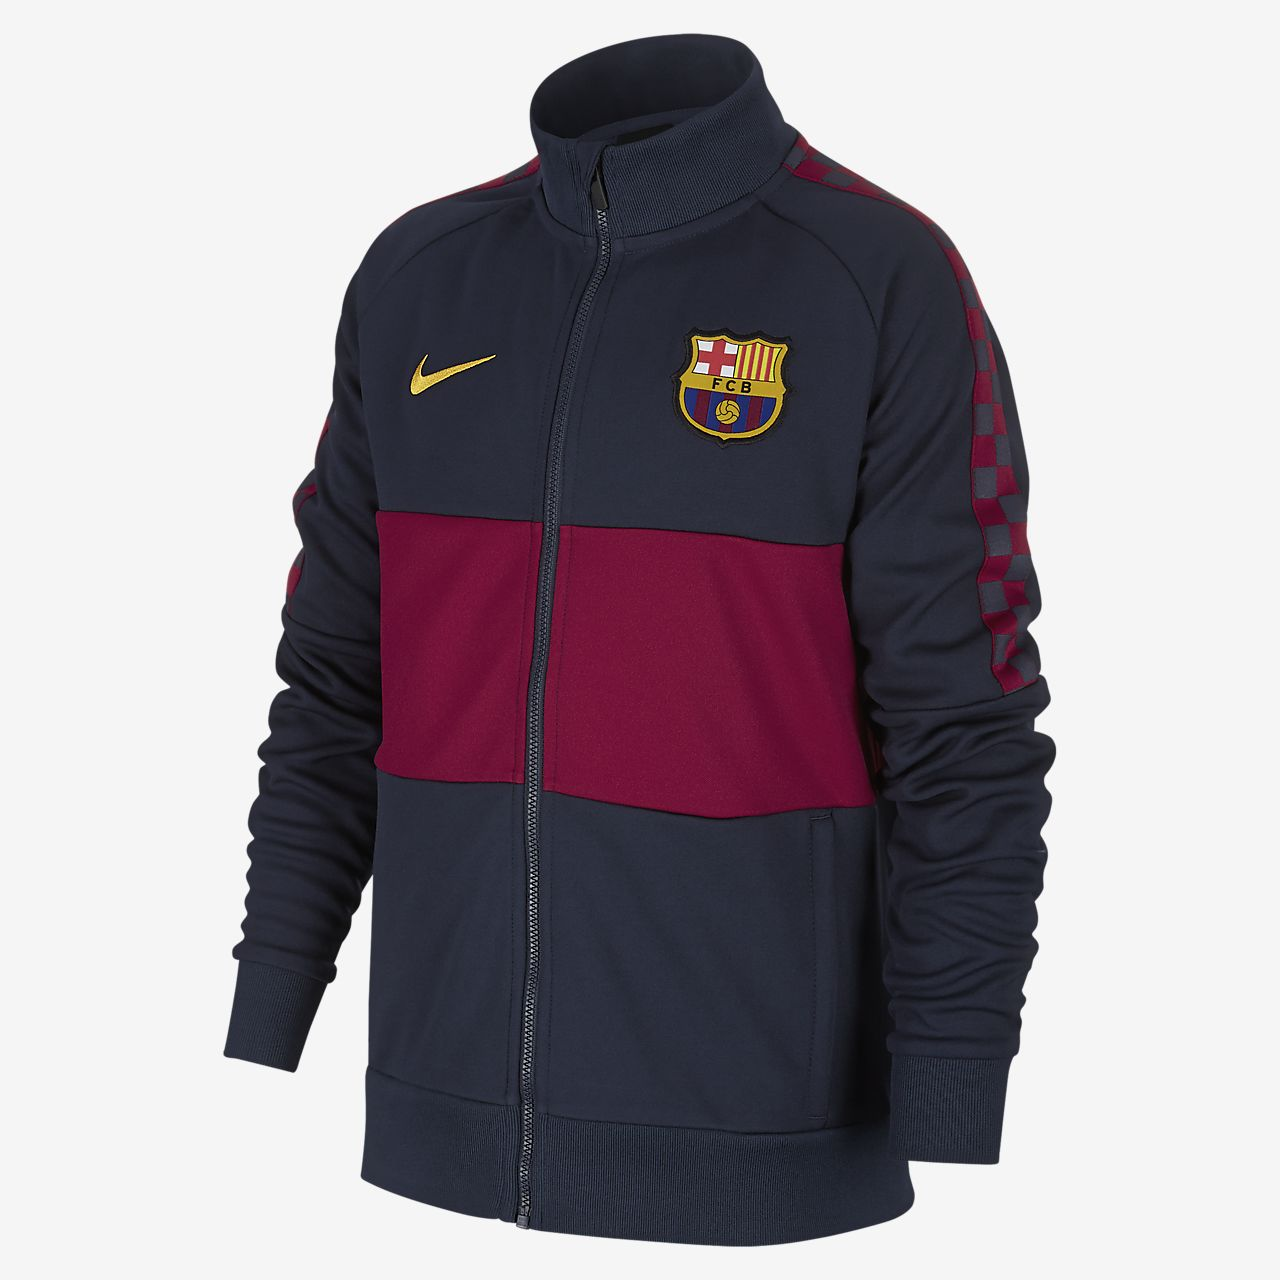 FC Barcelona Older Kids' Football Jacket